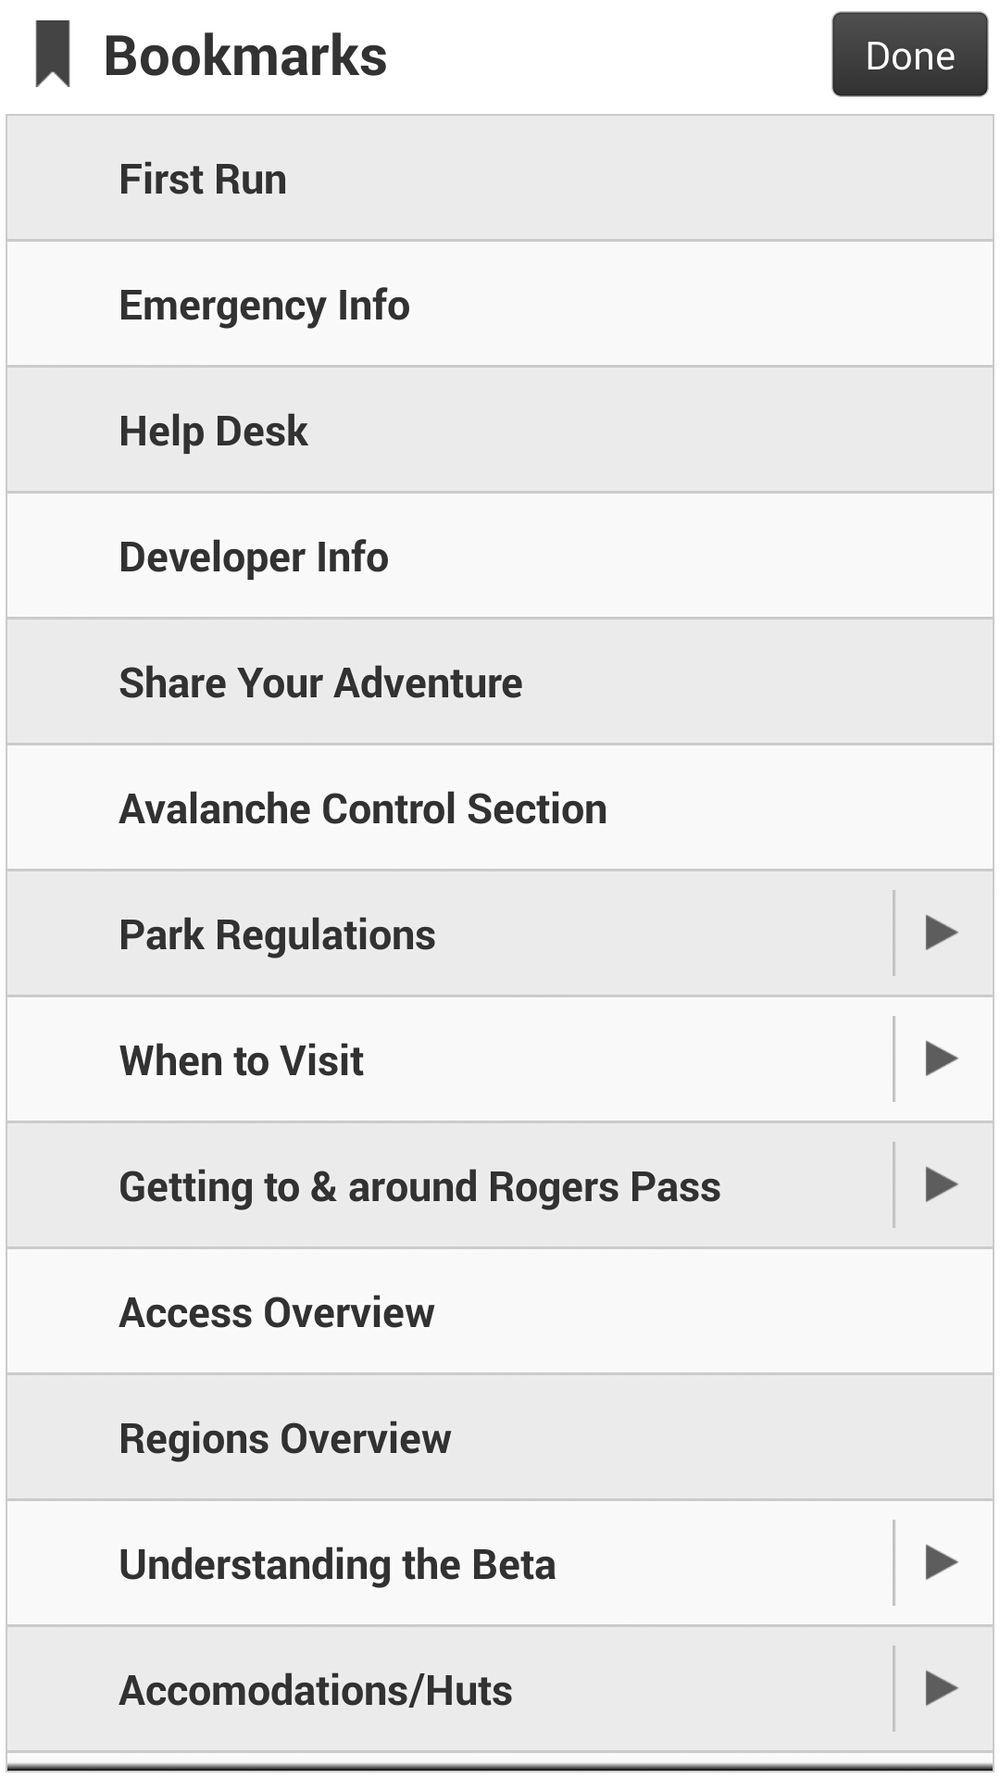 Image 4: Bookmarks Menu. AKA: Table of Contents.